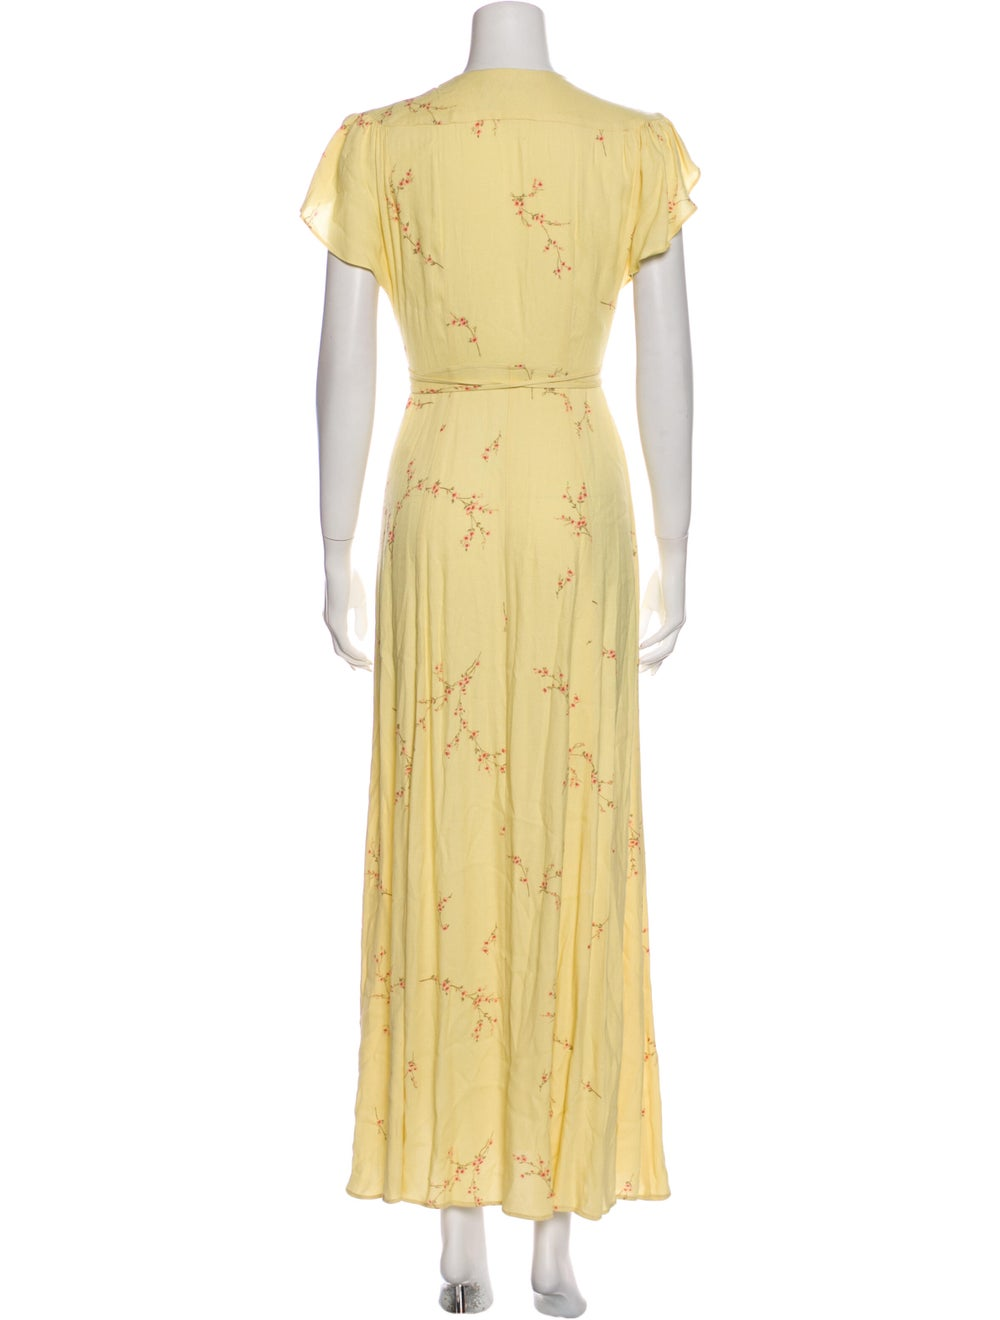 Reformation Floral Print Long Dress Yellow - image 3